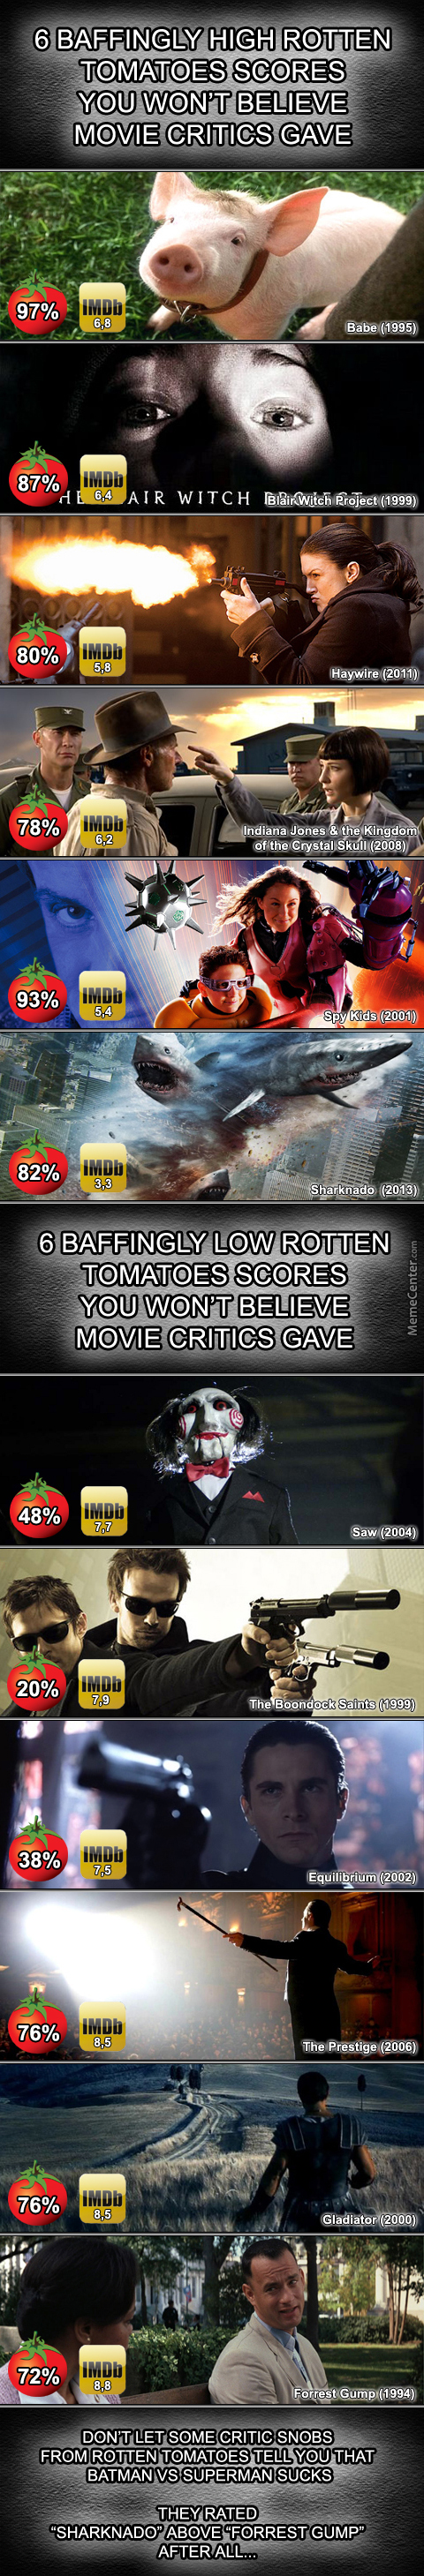 Of Course Sharknado Is Much Better Than Forrest Gump, Who Would Say Otherwise?